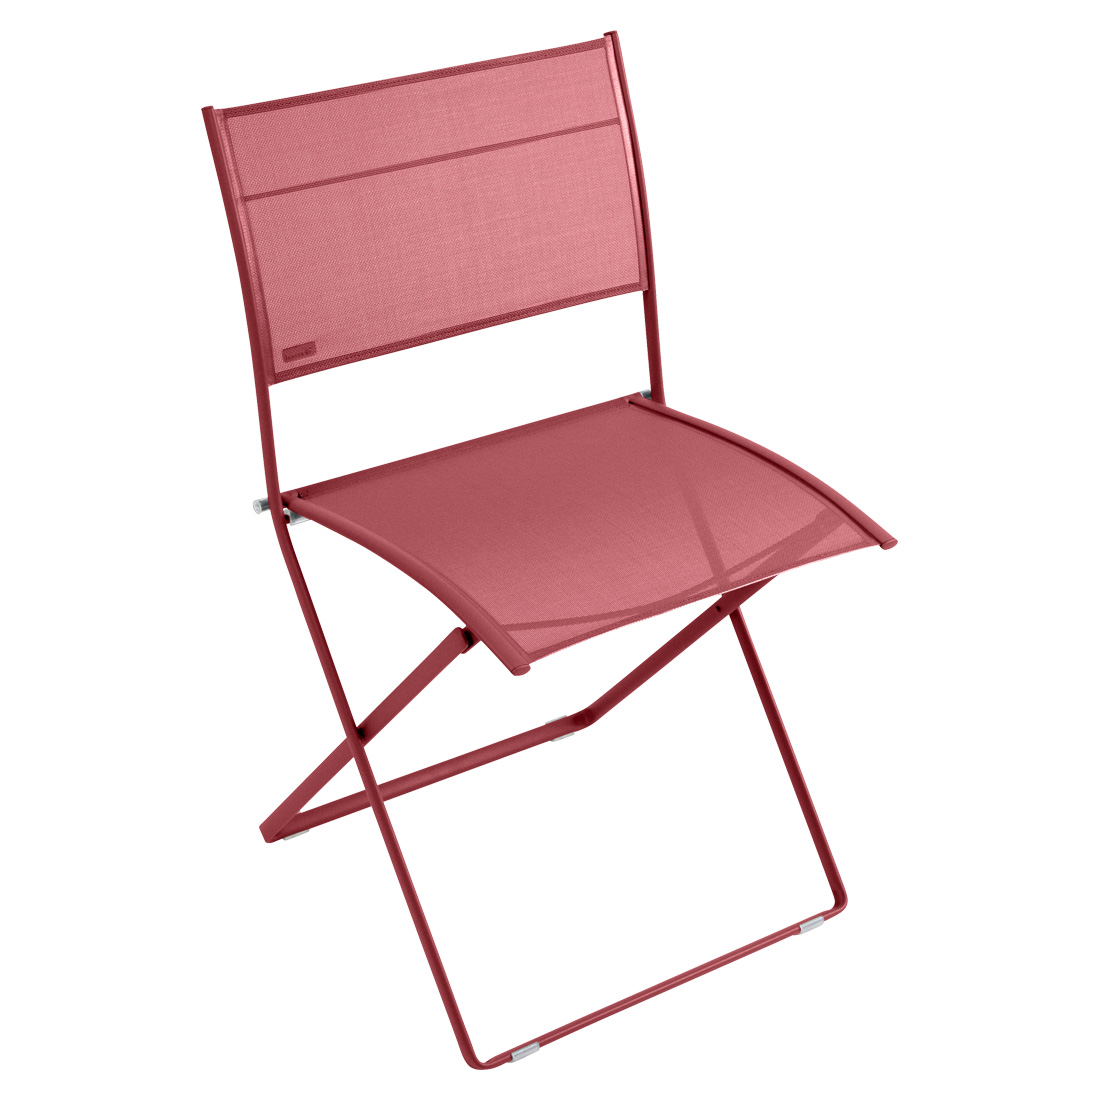 Plein Air Chair Chili